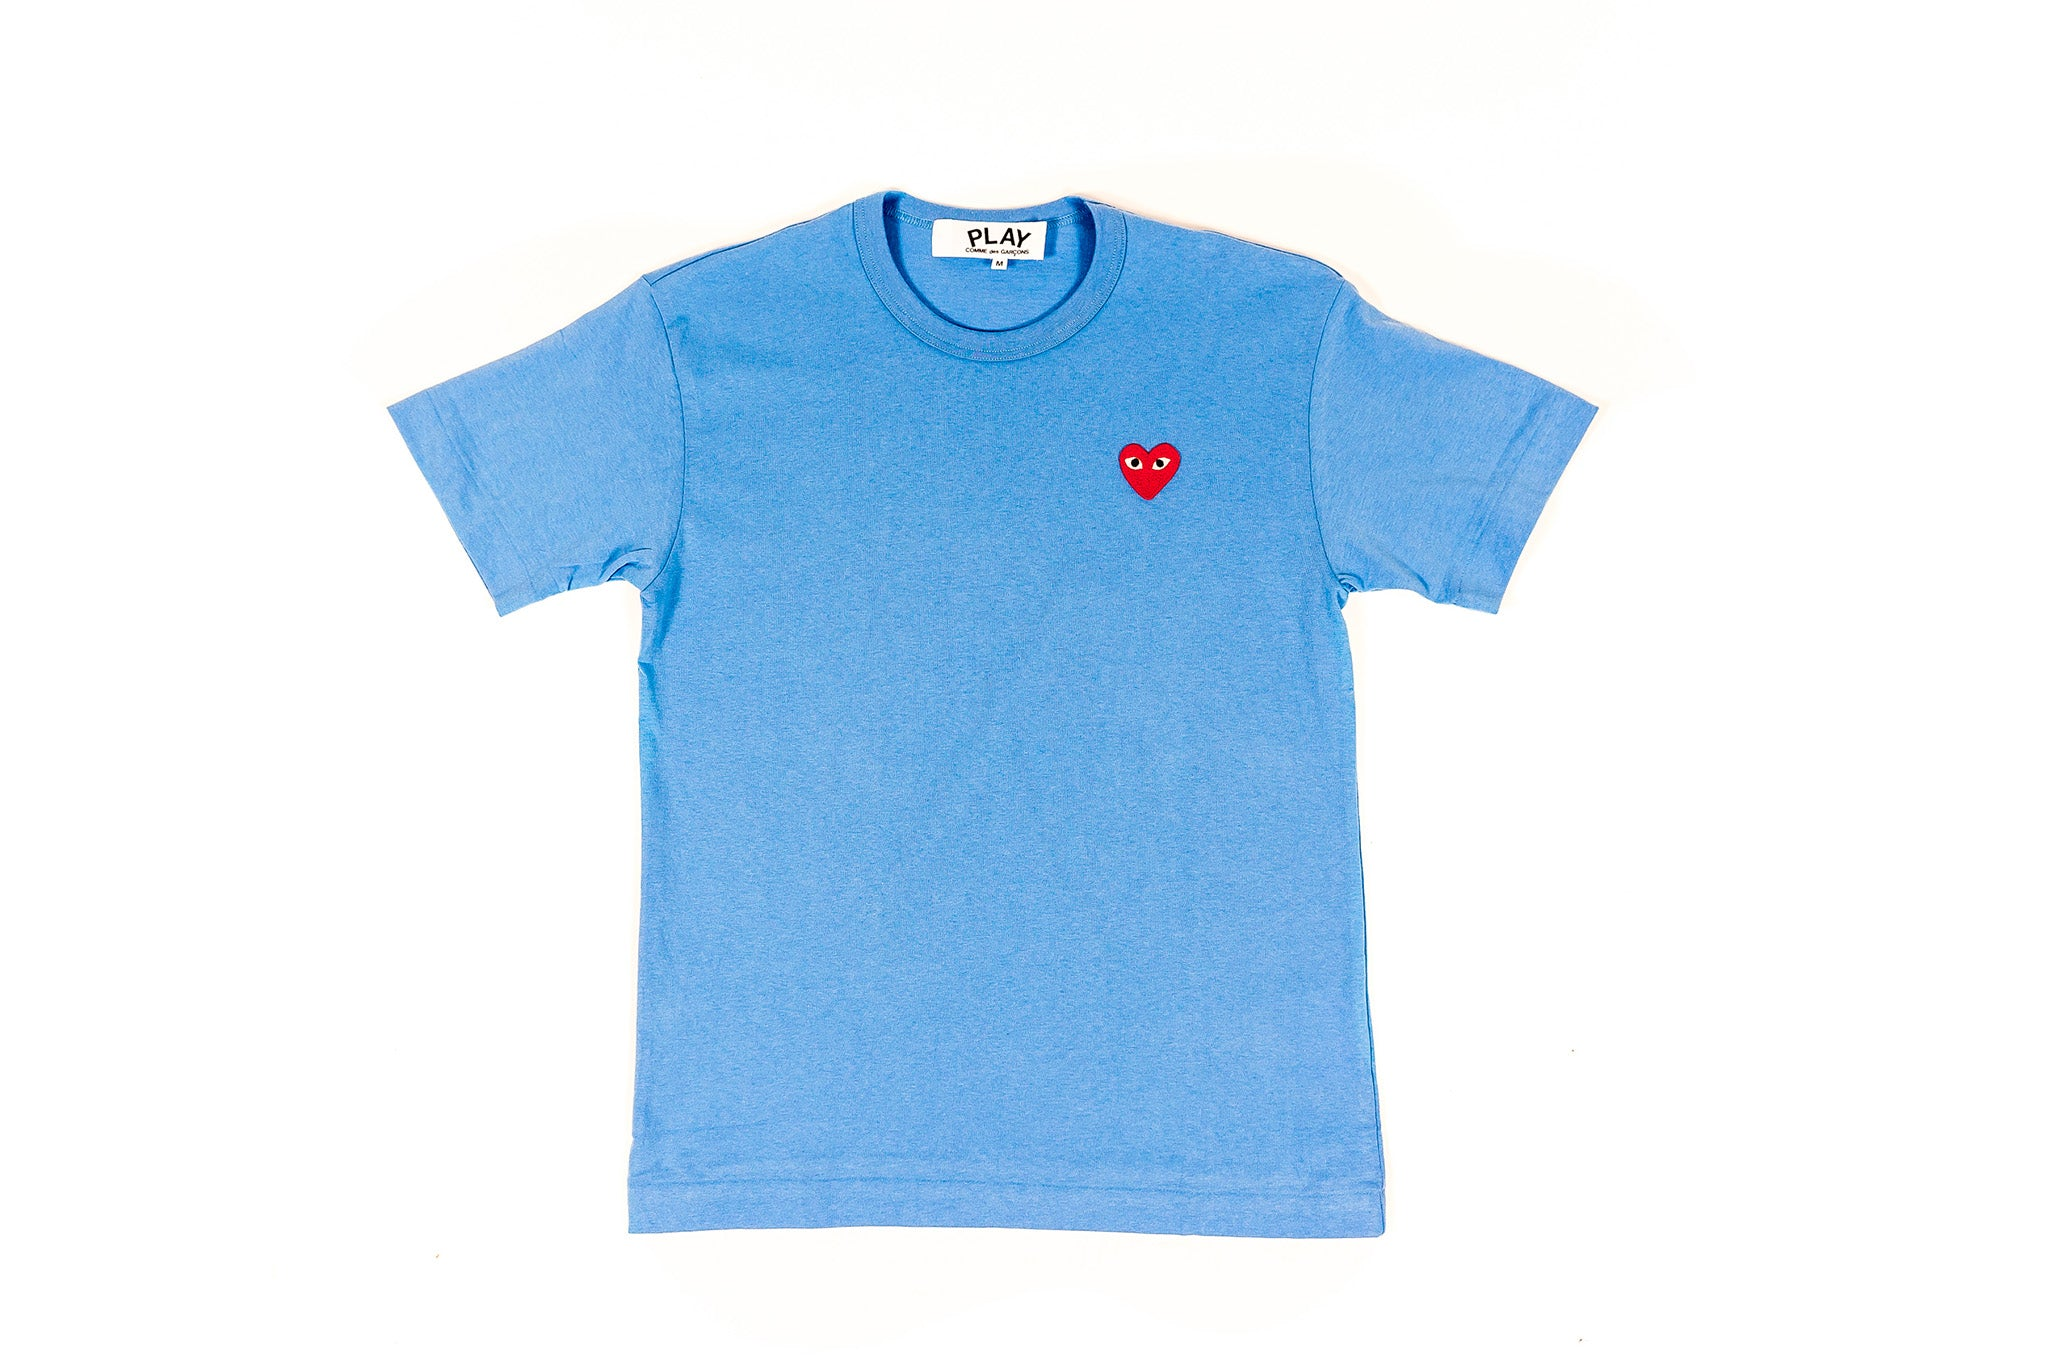 CDG PLAY BIG HEART S/S T-SHIRT